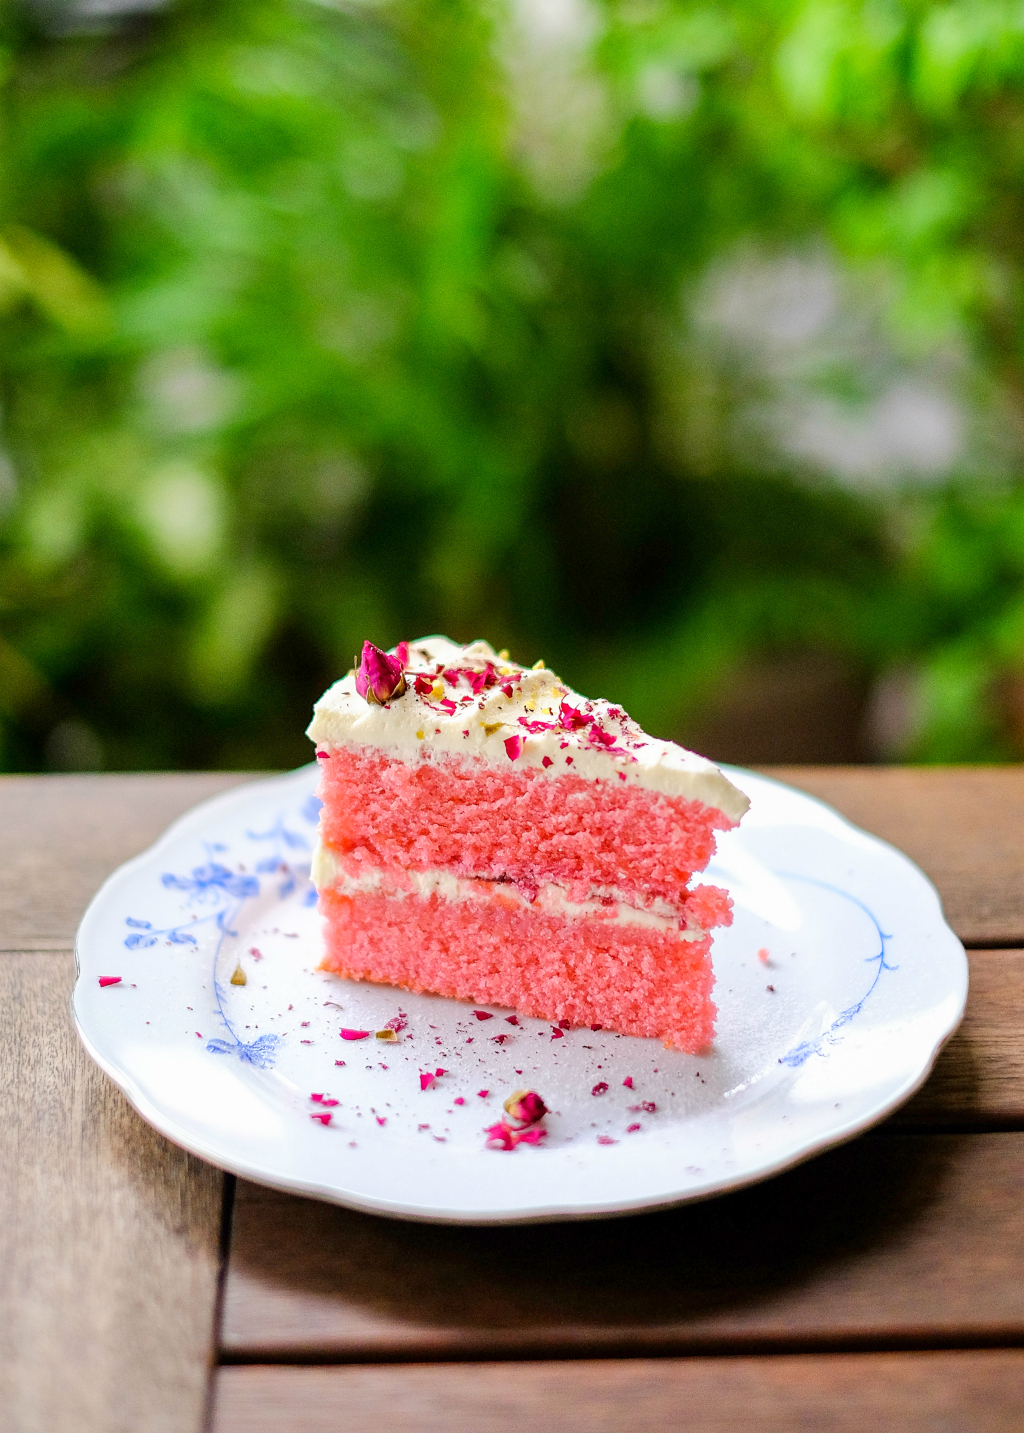 Food Guide to Jalan Besar & Lavender: Butter Studio's Ispahan (Lychee Rose Cake)